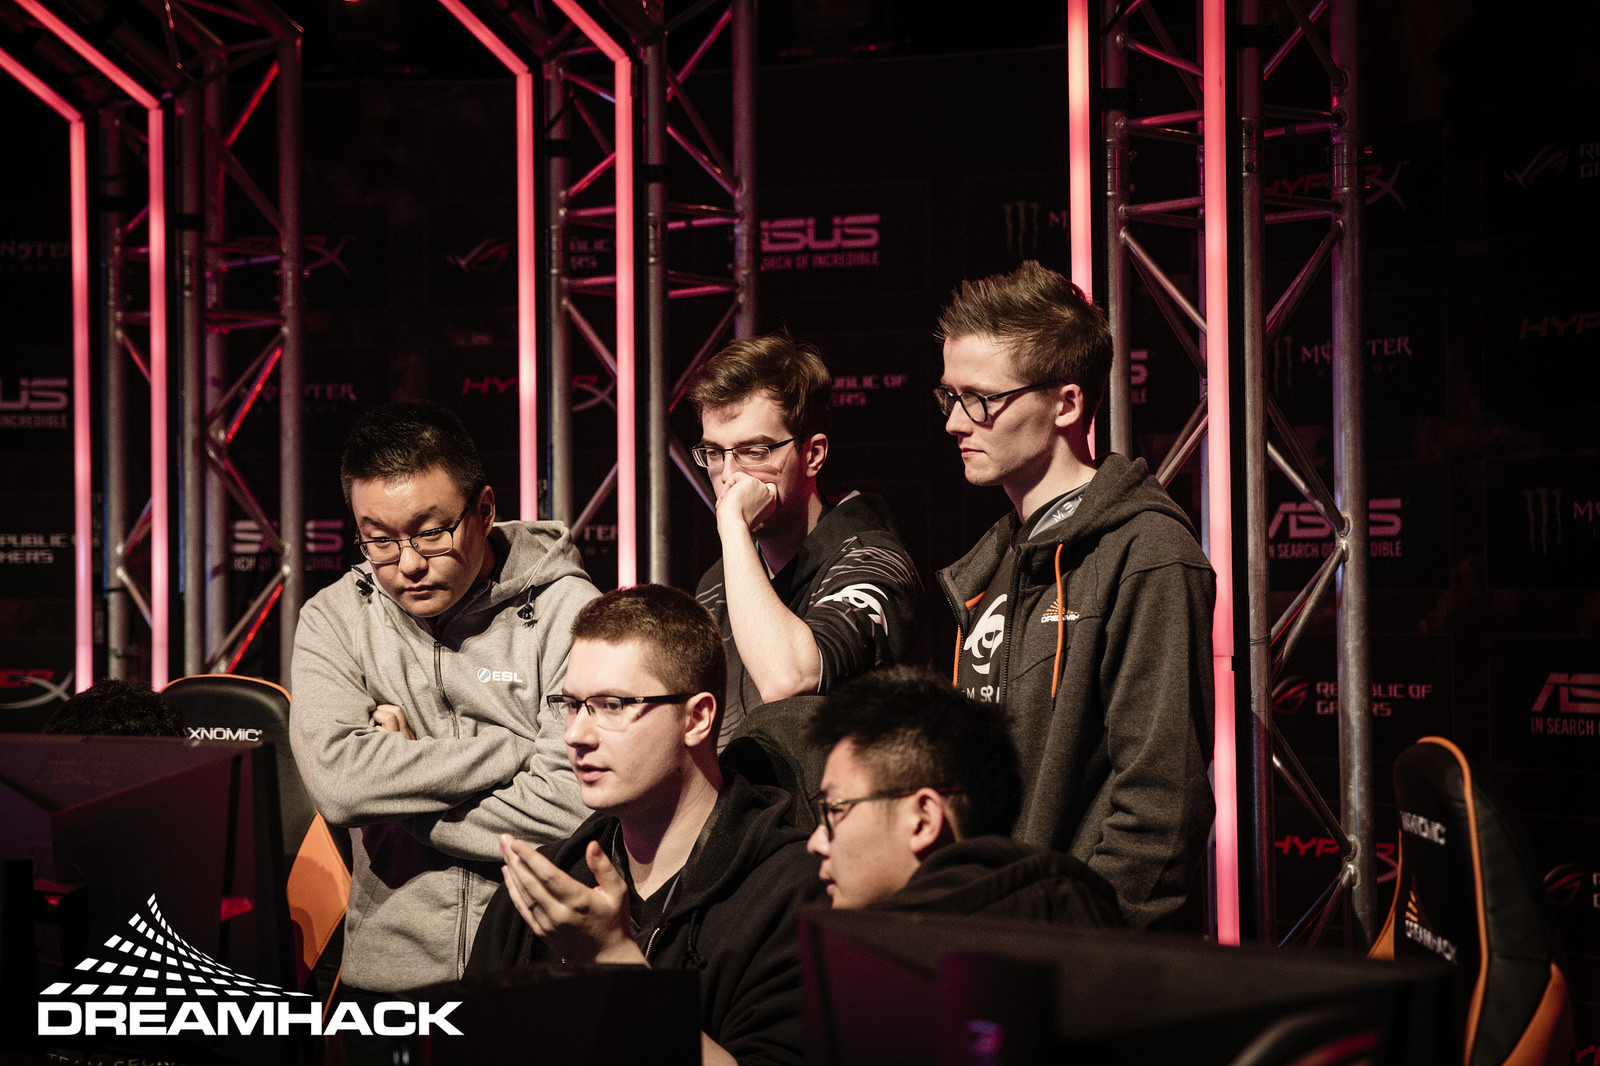 Vp Secret And Liquid Lead The Dota 2 Pro Circuit Standings After Flash Flickr Photo Sharing Via Dreamhackhttps Flickrcom Photos Dreamhack 37907371845